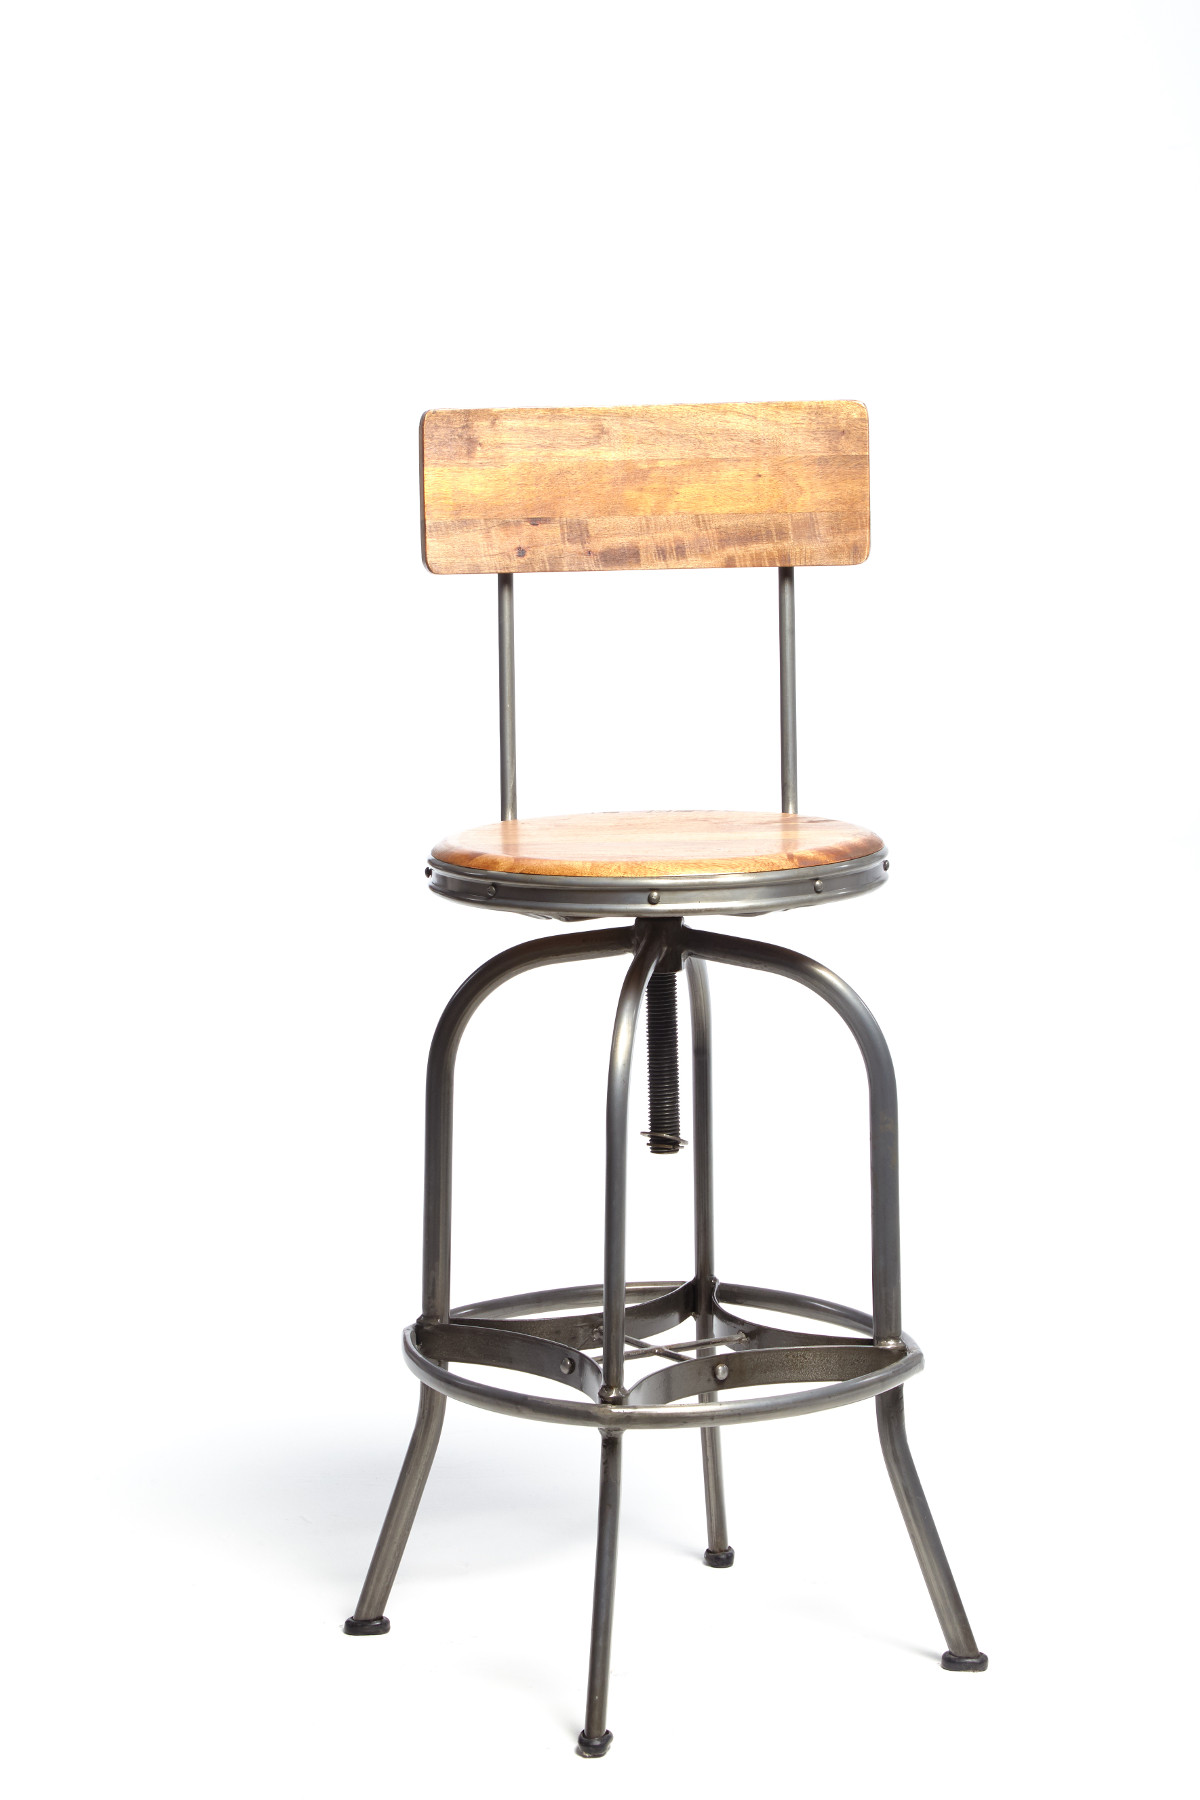 Reclaimed Bar Stool with Back Rest